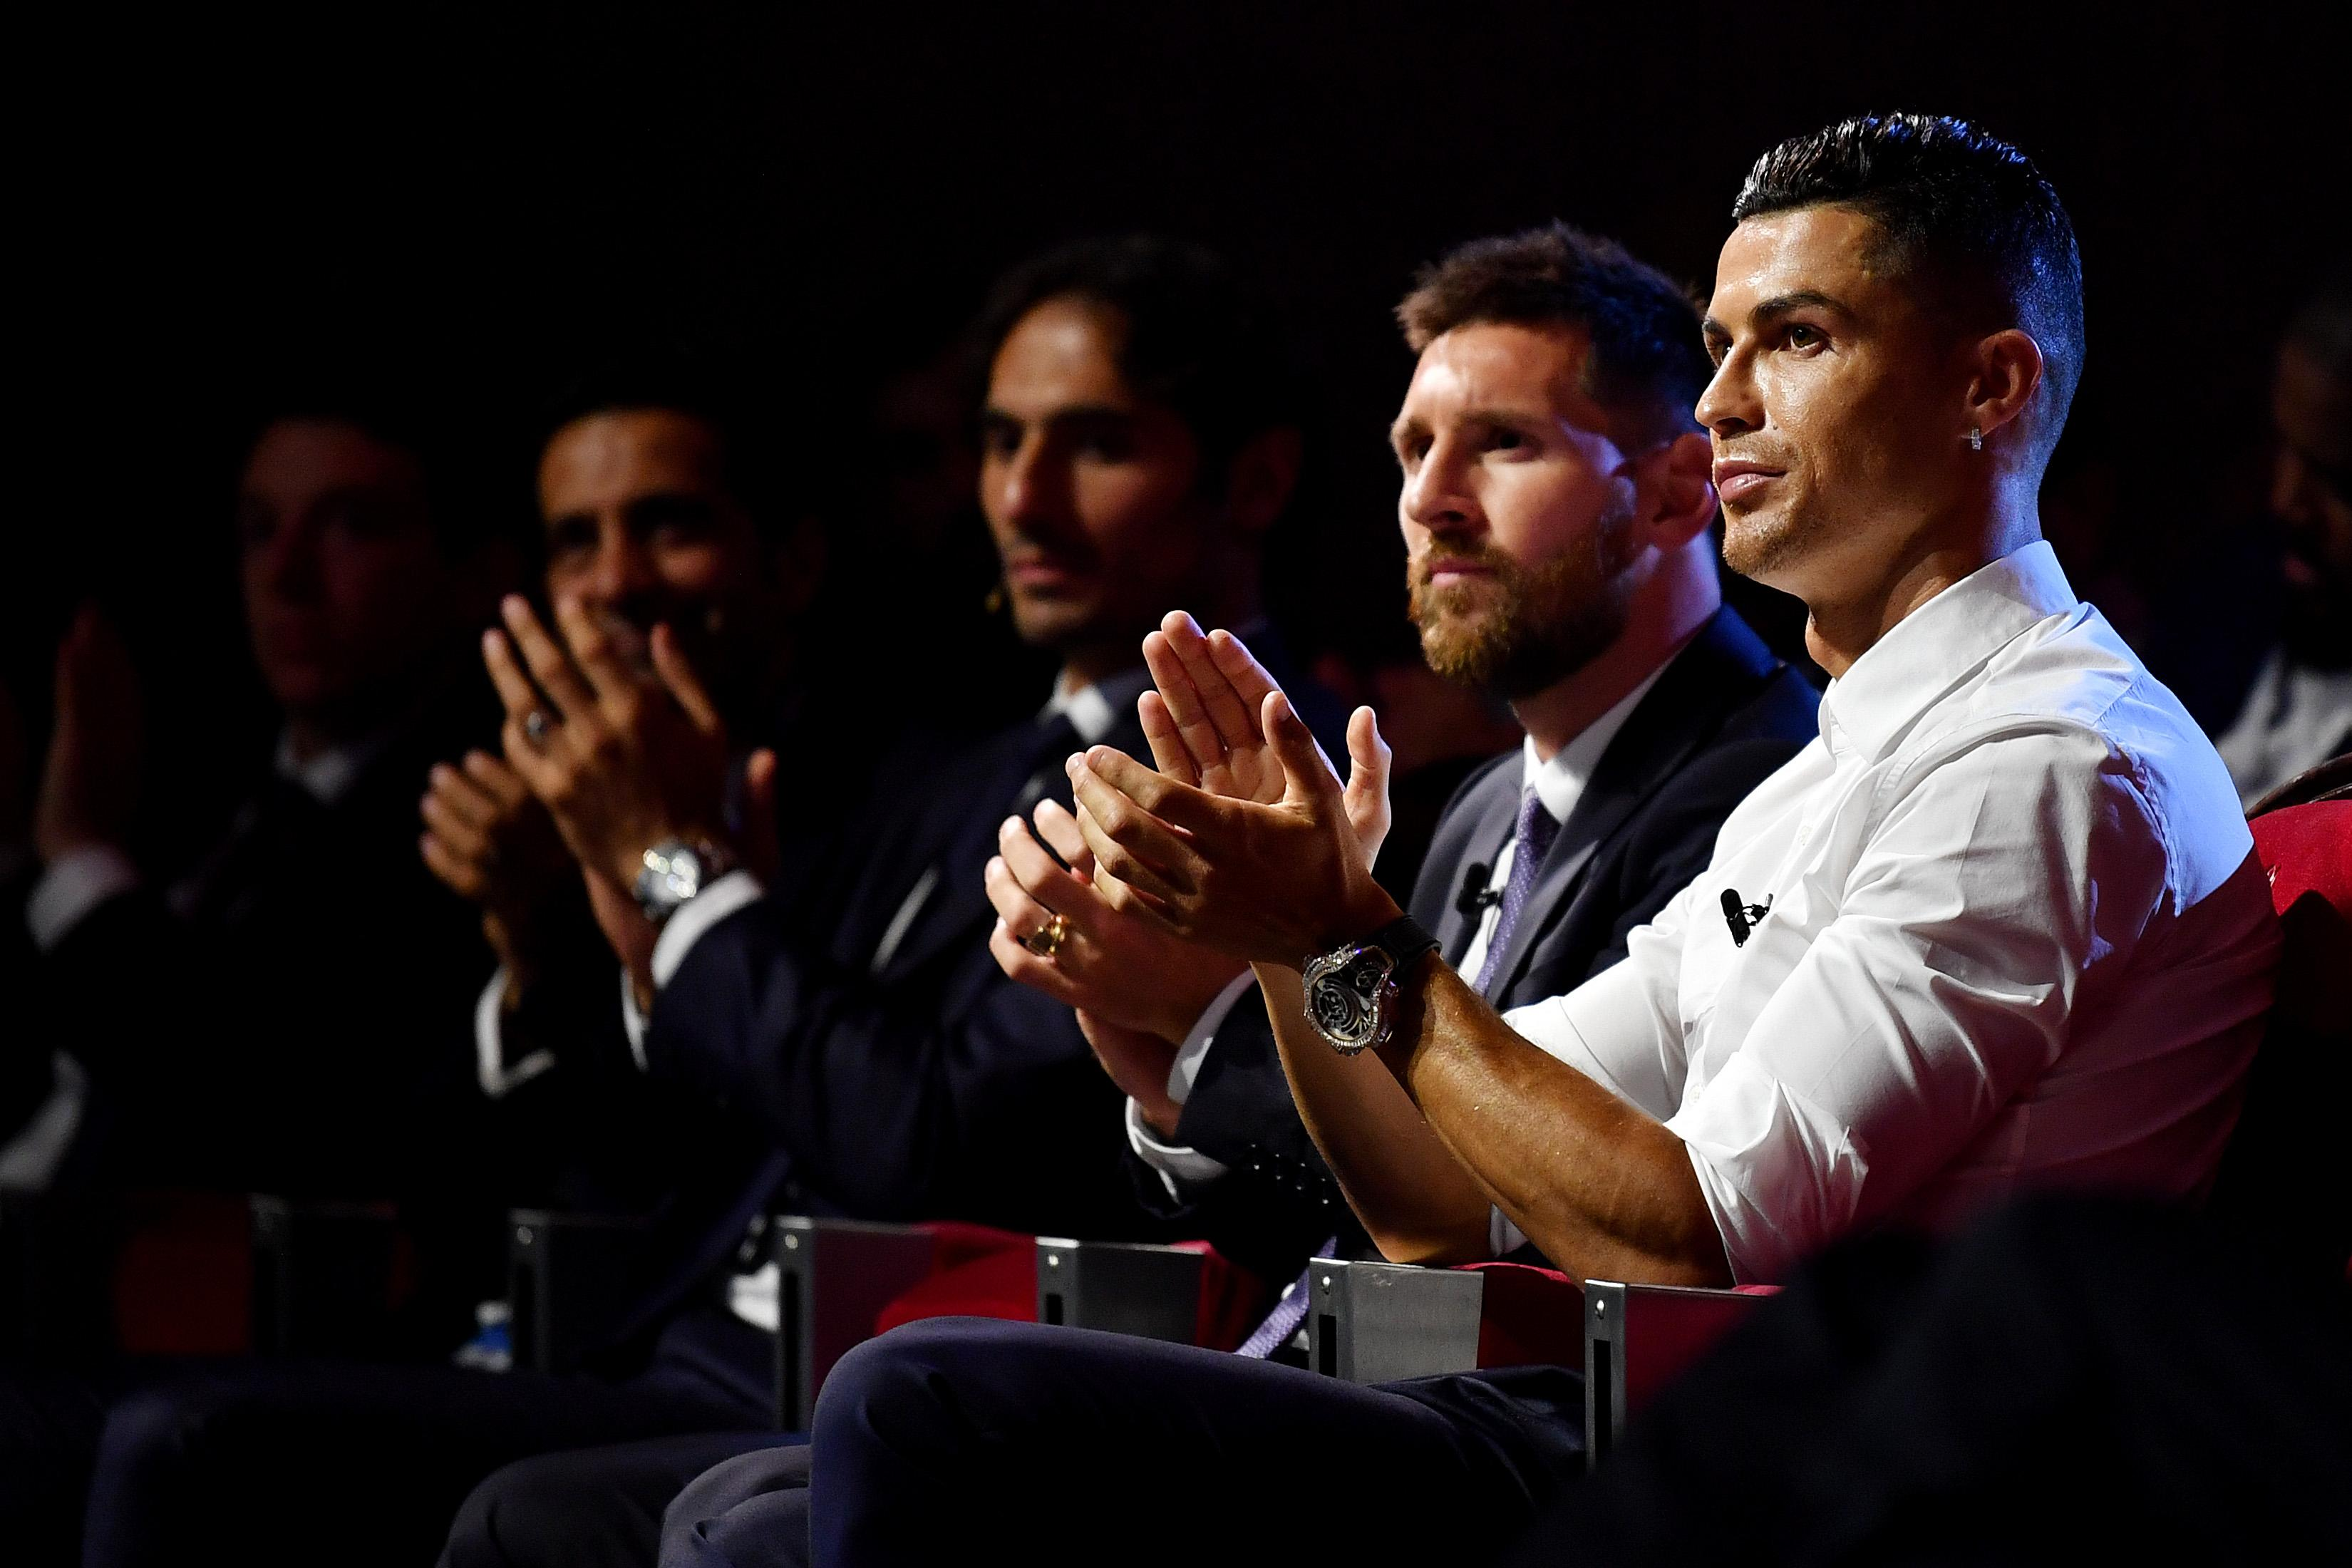 Champions League Draw Messi Ronaldo Highlights Group Stage